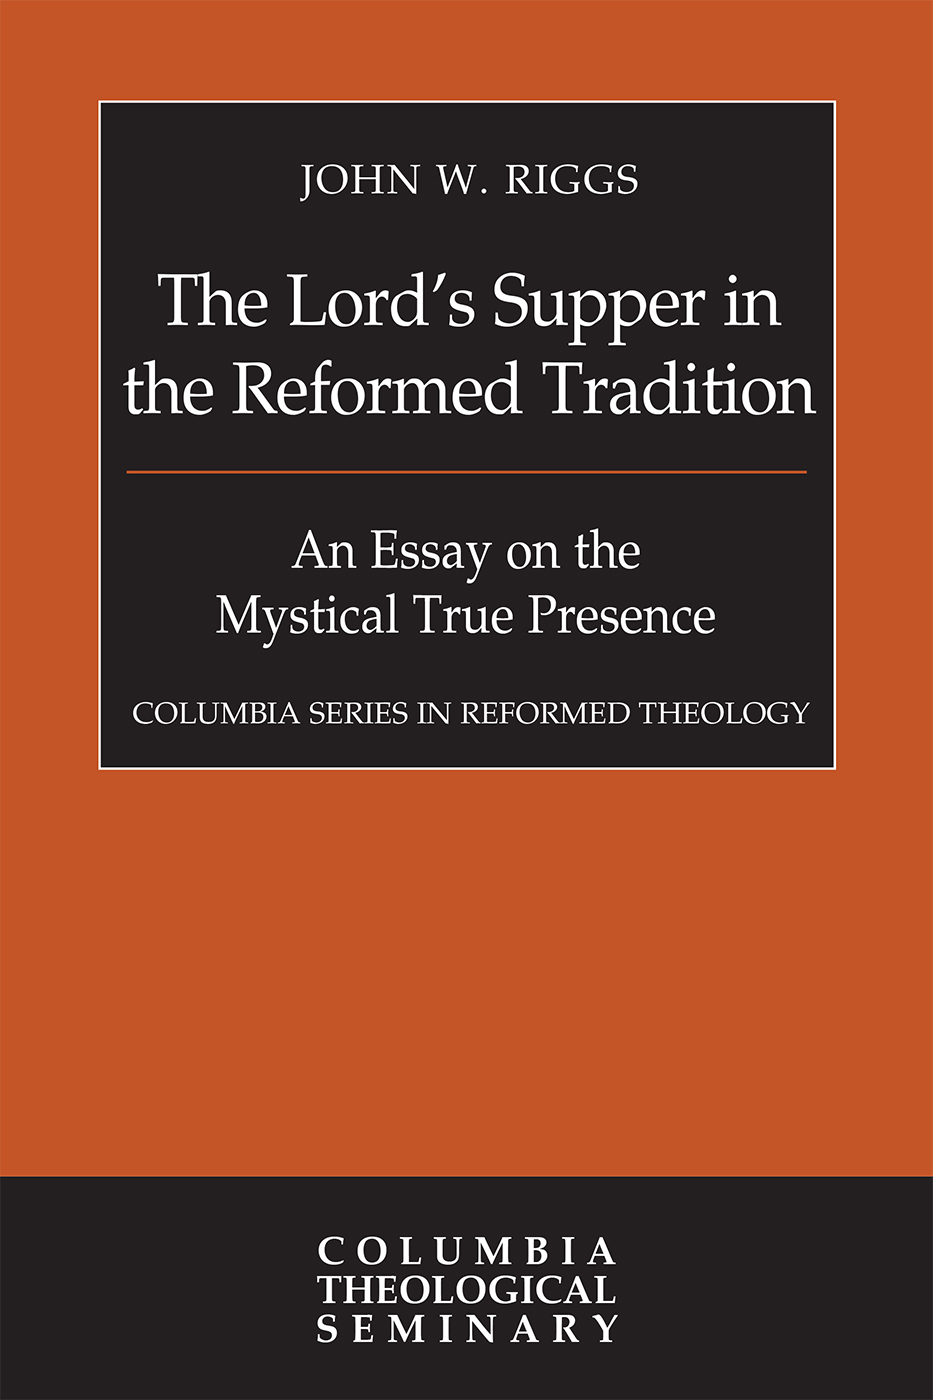 The Lord's Supper in the Reformed Tradition